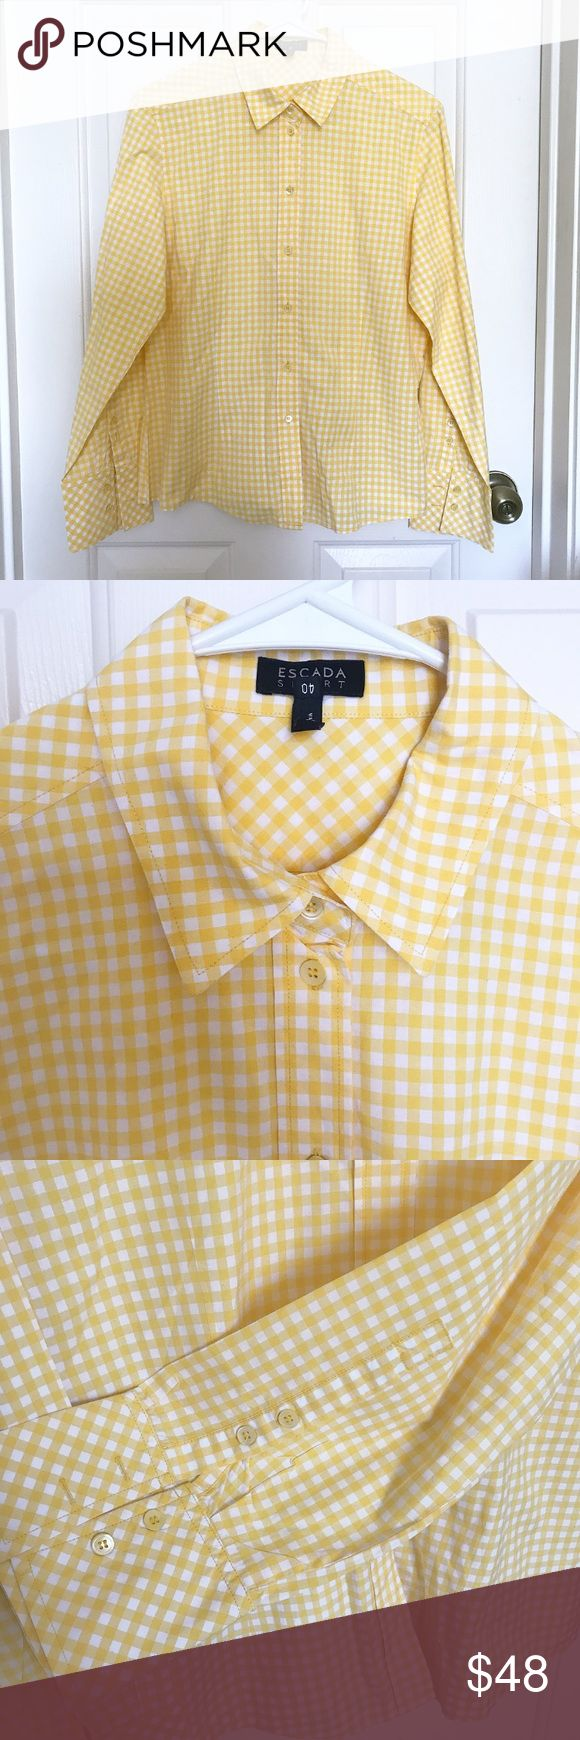 Escada Sport women's shirts Escada sports women's shirts / size : 40 (us6-8) / new without tag / in excellent condition / color : yellow & white Escada Tops Button Down Shirts